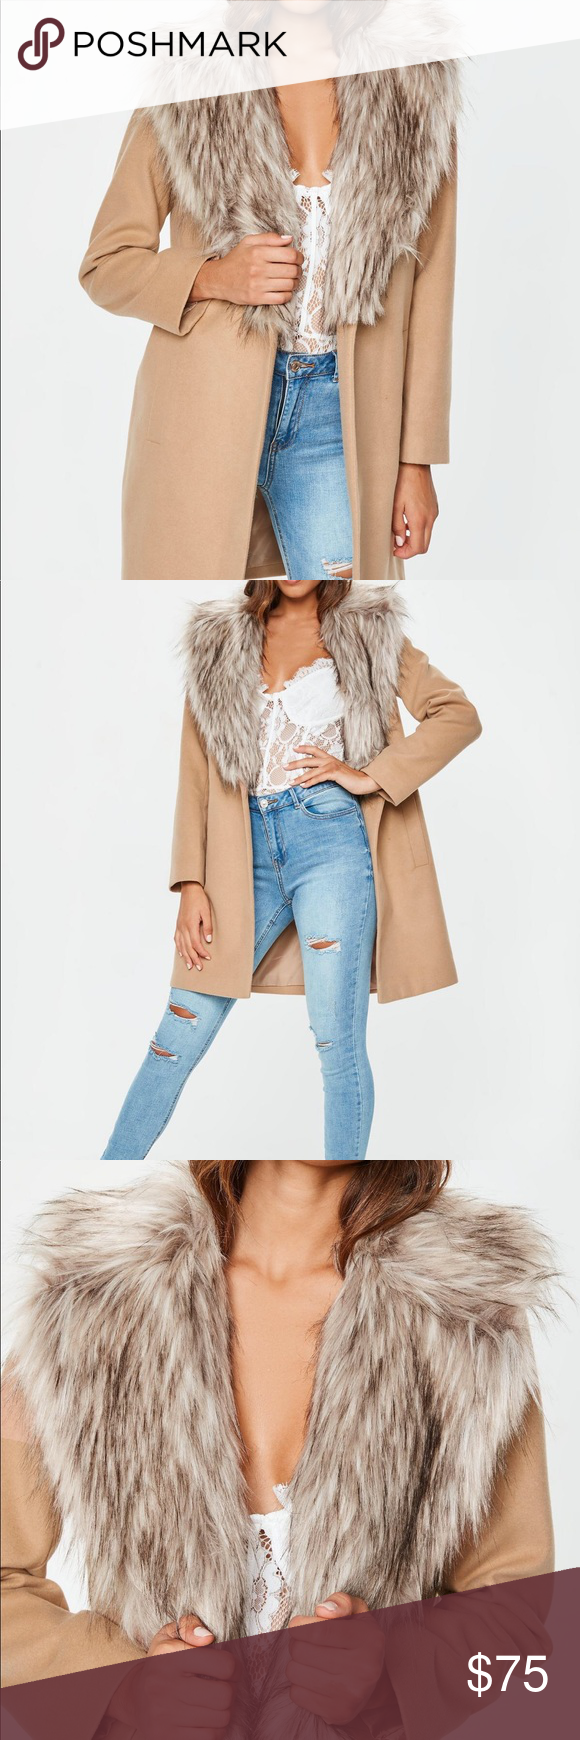 724f3dfd6284 NWT Missguided Camel Faux Fur Collar Coat sz 2 Brand new with tags and  original packaging